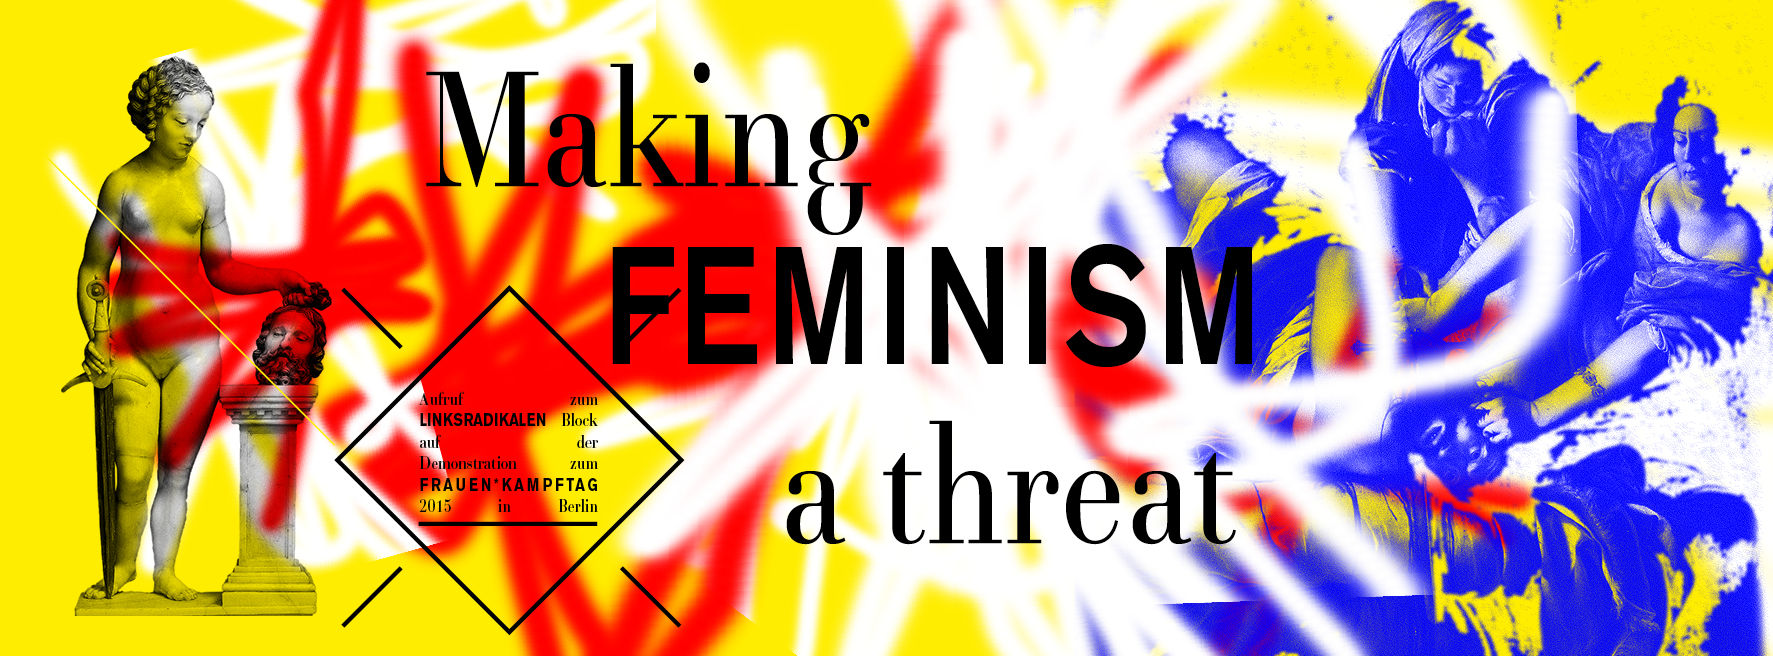 making feminism a threat